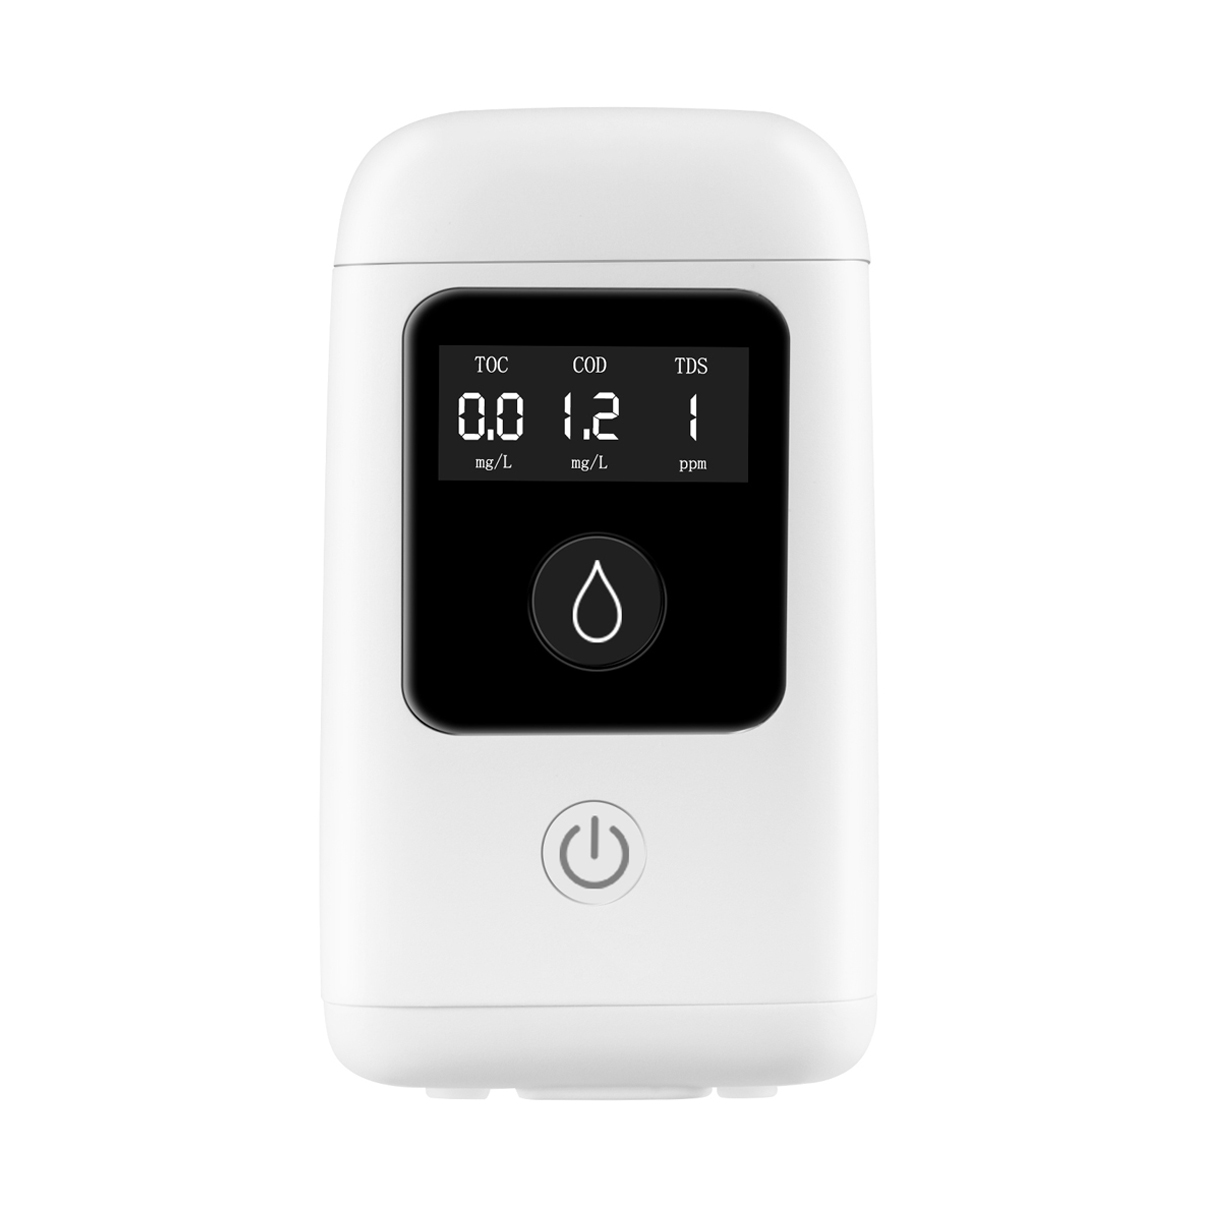 THGS Multi-Functional High-Precision Home Spectrum Multi-Water Detector Tds Drinking Water Bacteria DetectorTHGS Multi-Functional High-Precision Home Spectrum Multi-Water Detector Tds Drinking Water Bacteria Detector